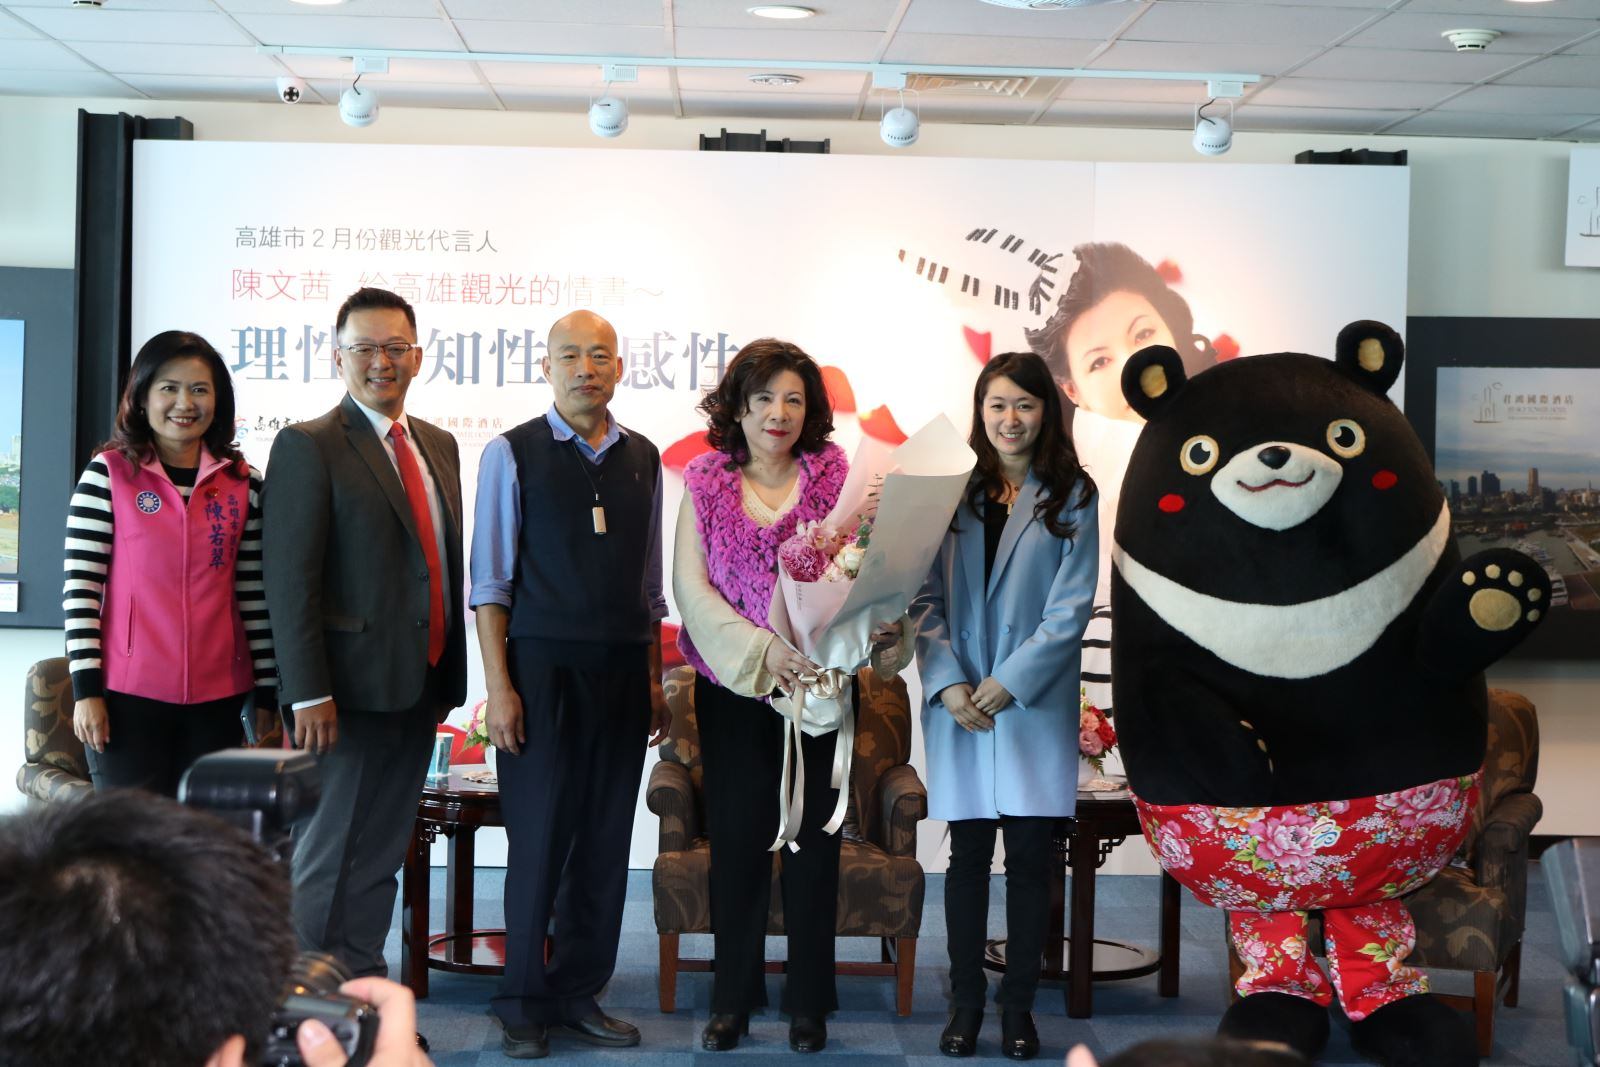 Sissy Wen-chien Chen endorse for Kaohsiung in Feb.